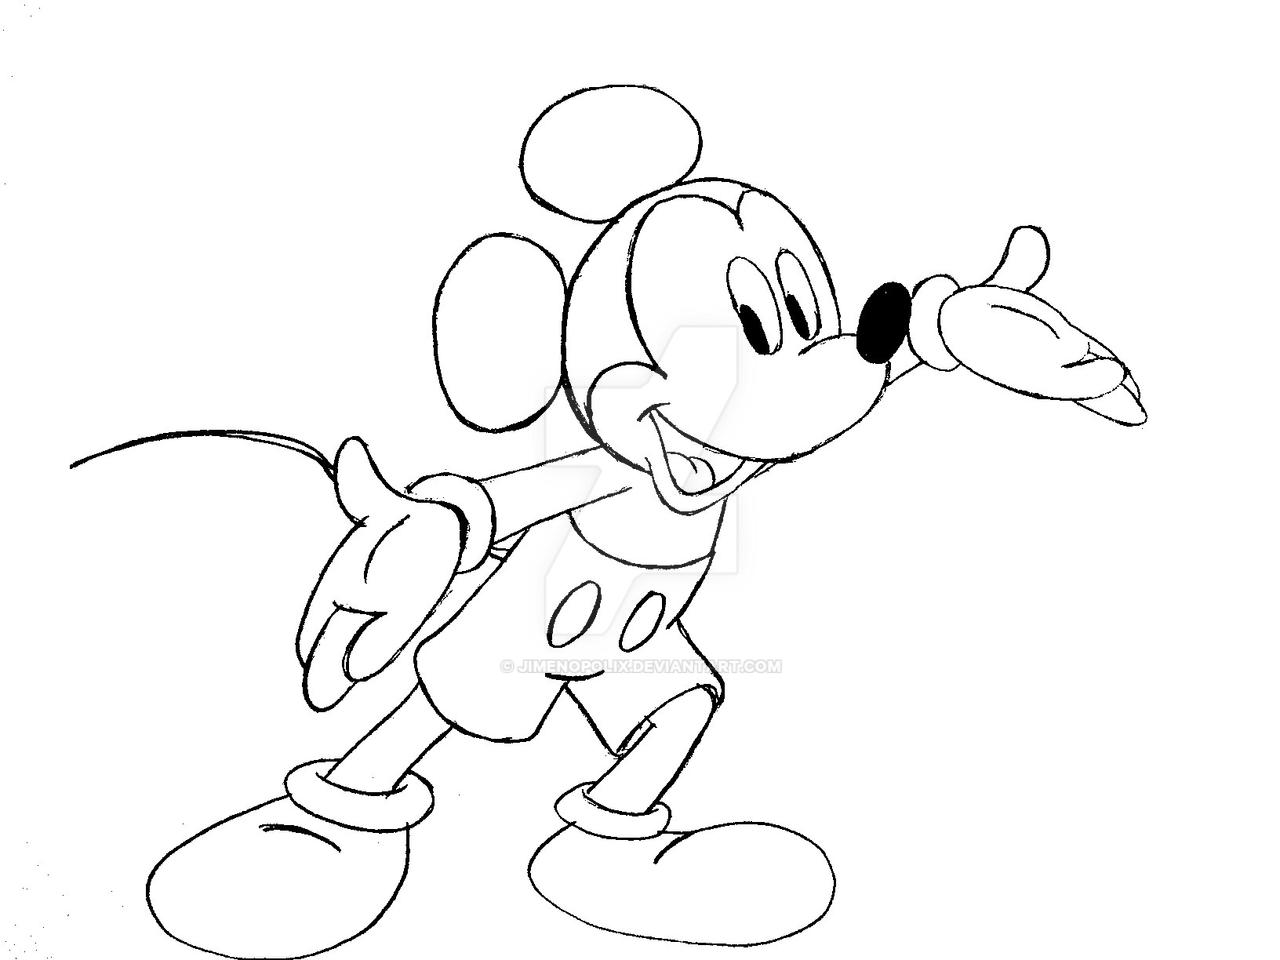 Drawing Lines With Mouse C : Another mickey mouse drawing by jimenopolix on deviantart